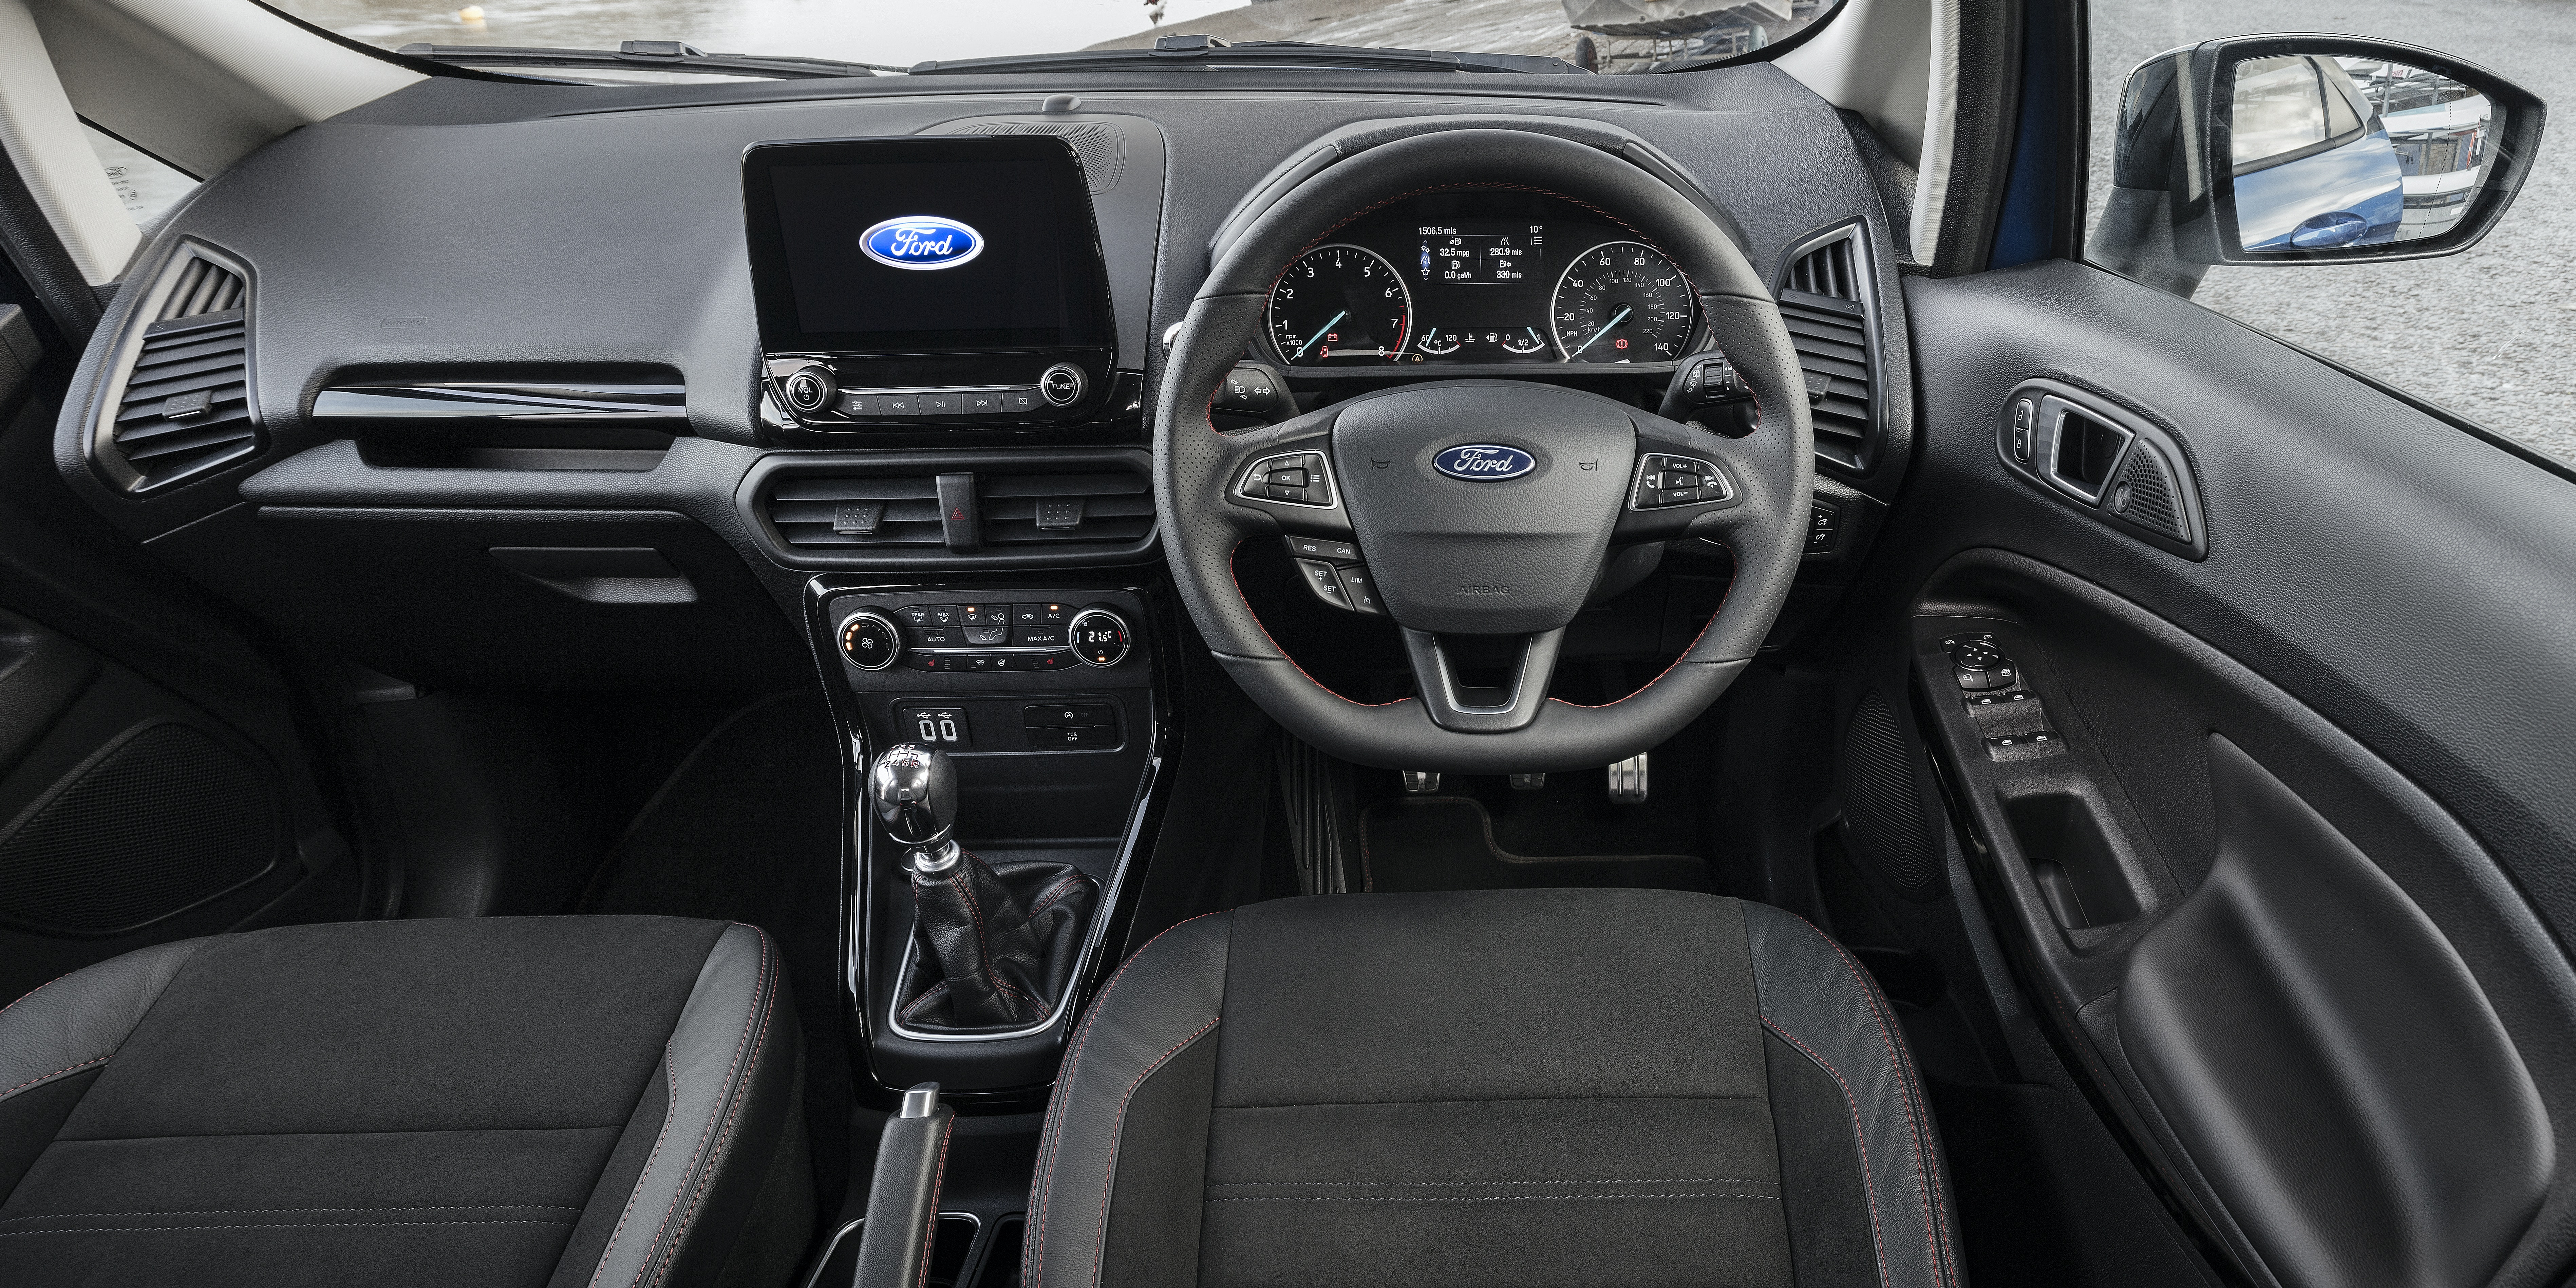 The Ecosport shares its basic cabin design with the latest Fiesta, with a choice of two touchscreens